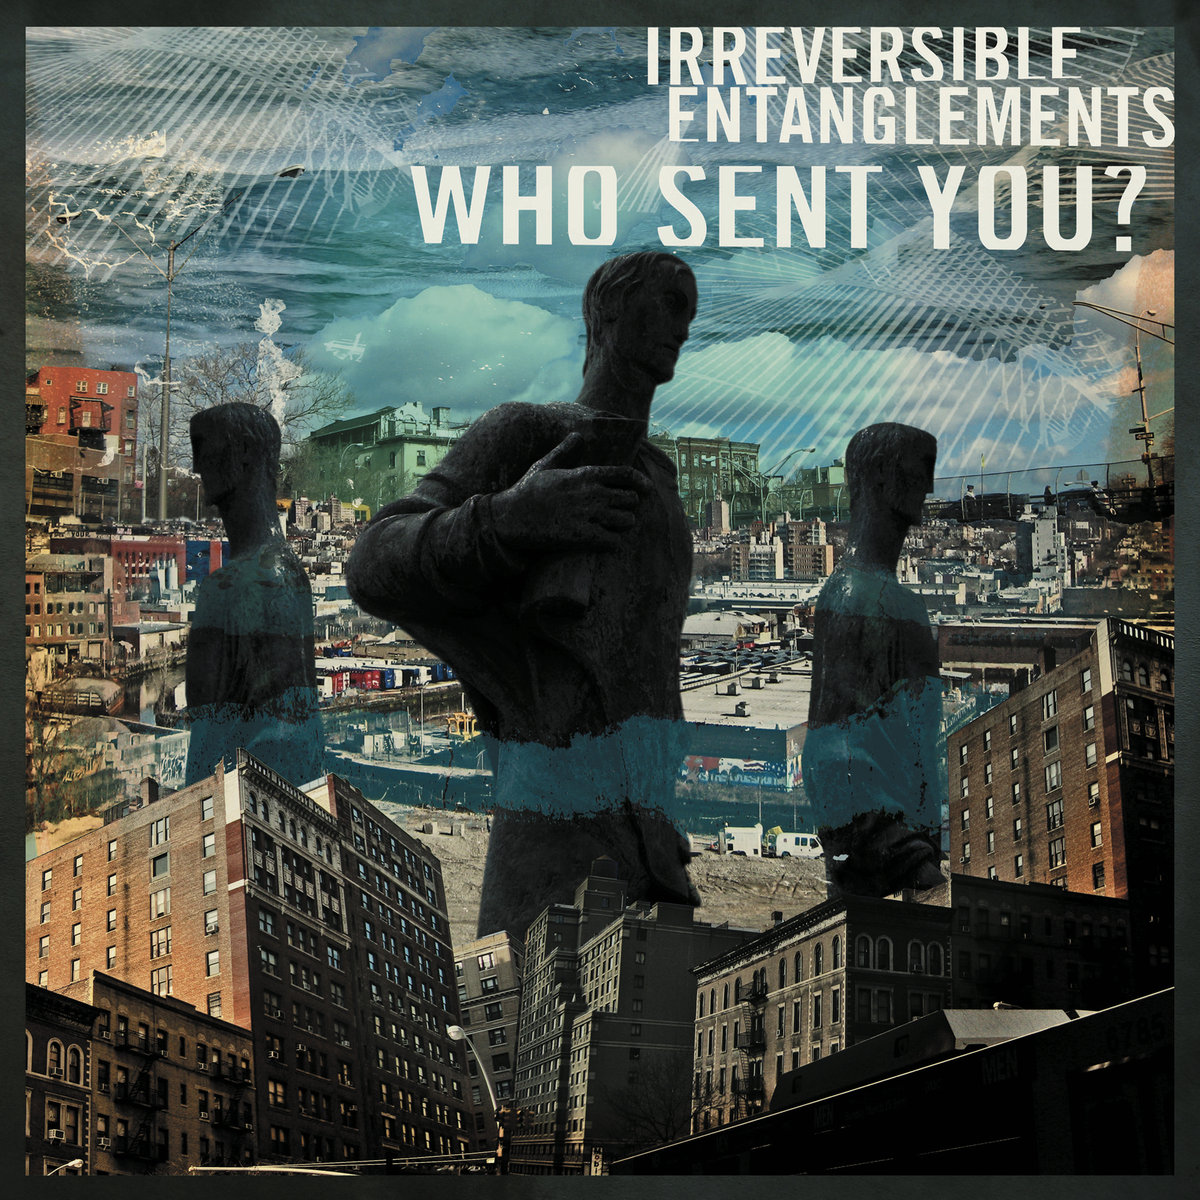 Irreversible Entanglements | Who Sent You?